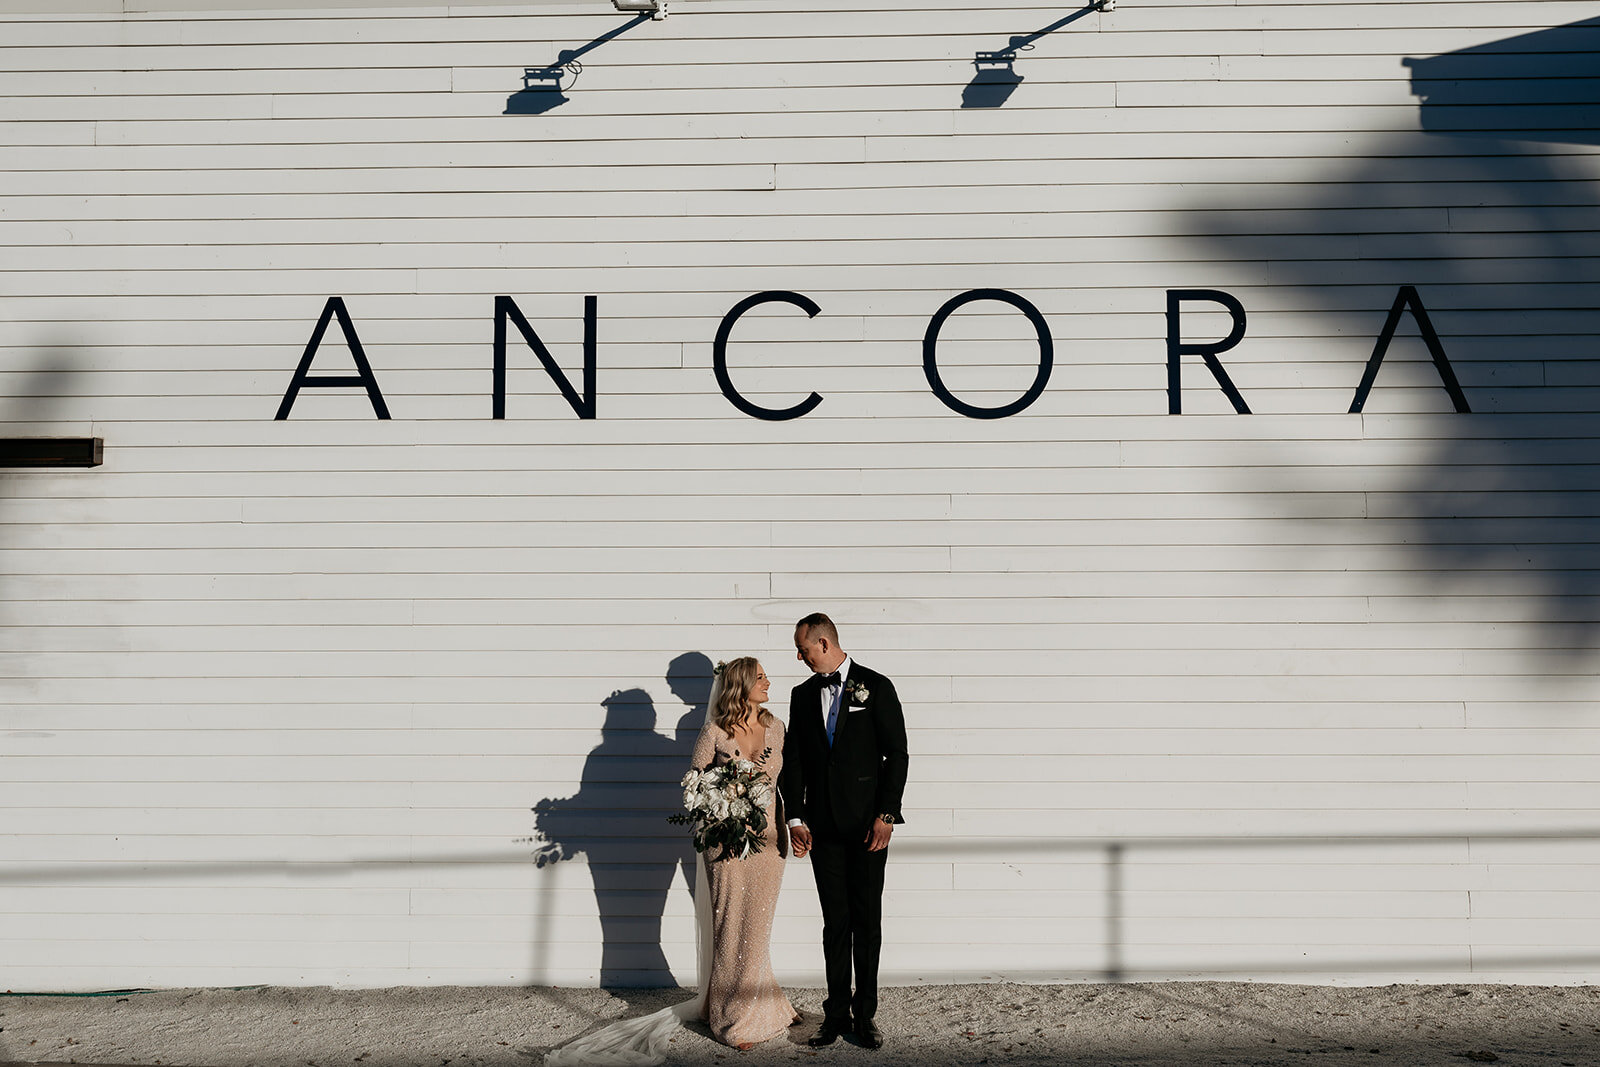 Ancora, Tweed Heads - Ancora is a picturesque, Mediterranean inspired, waterfront wedding venue located in Tweed Heads, minutes from famous Gold Coast beaches.